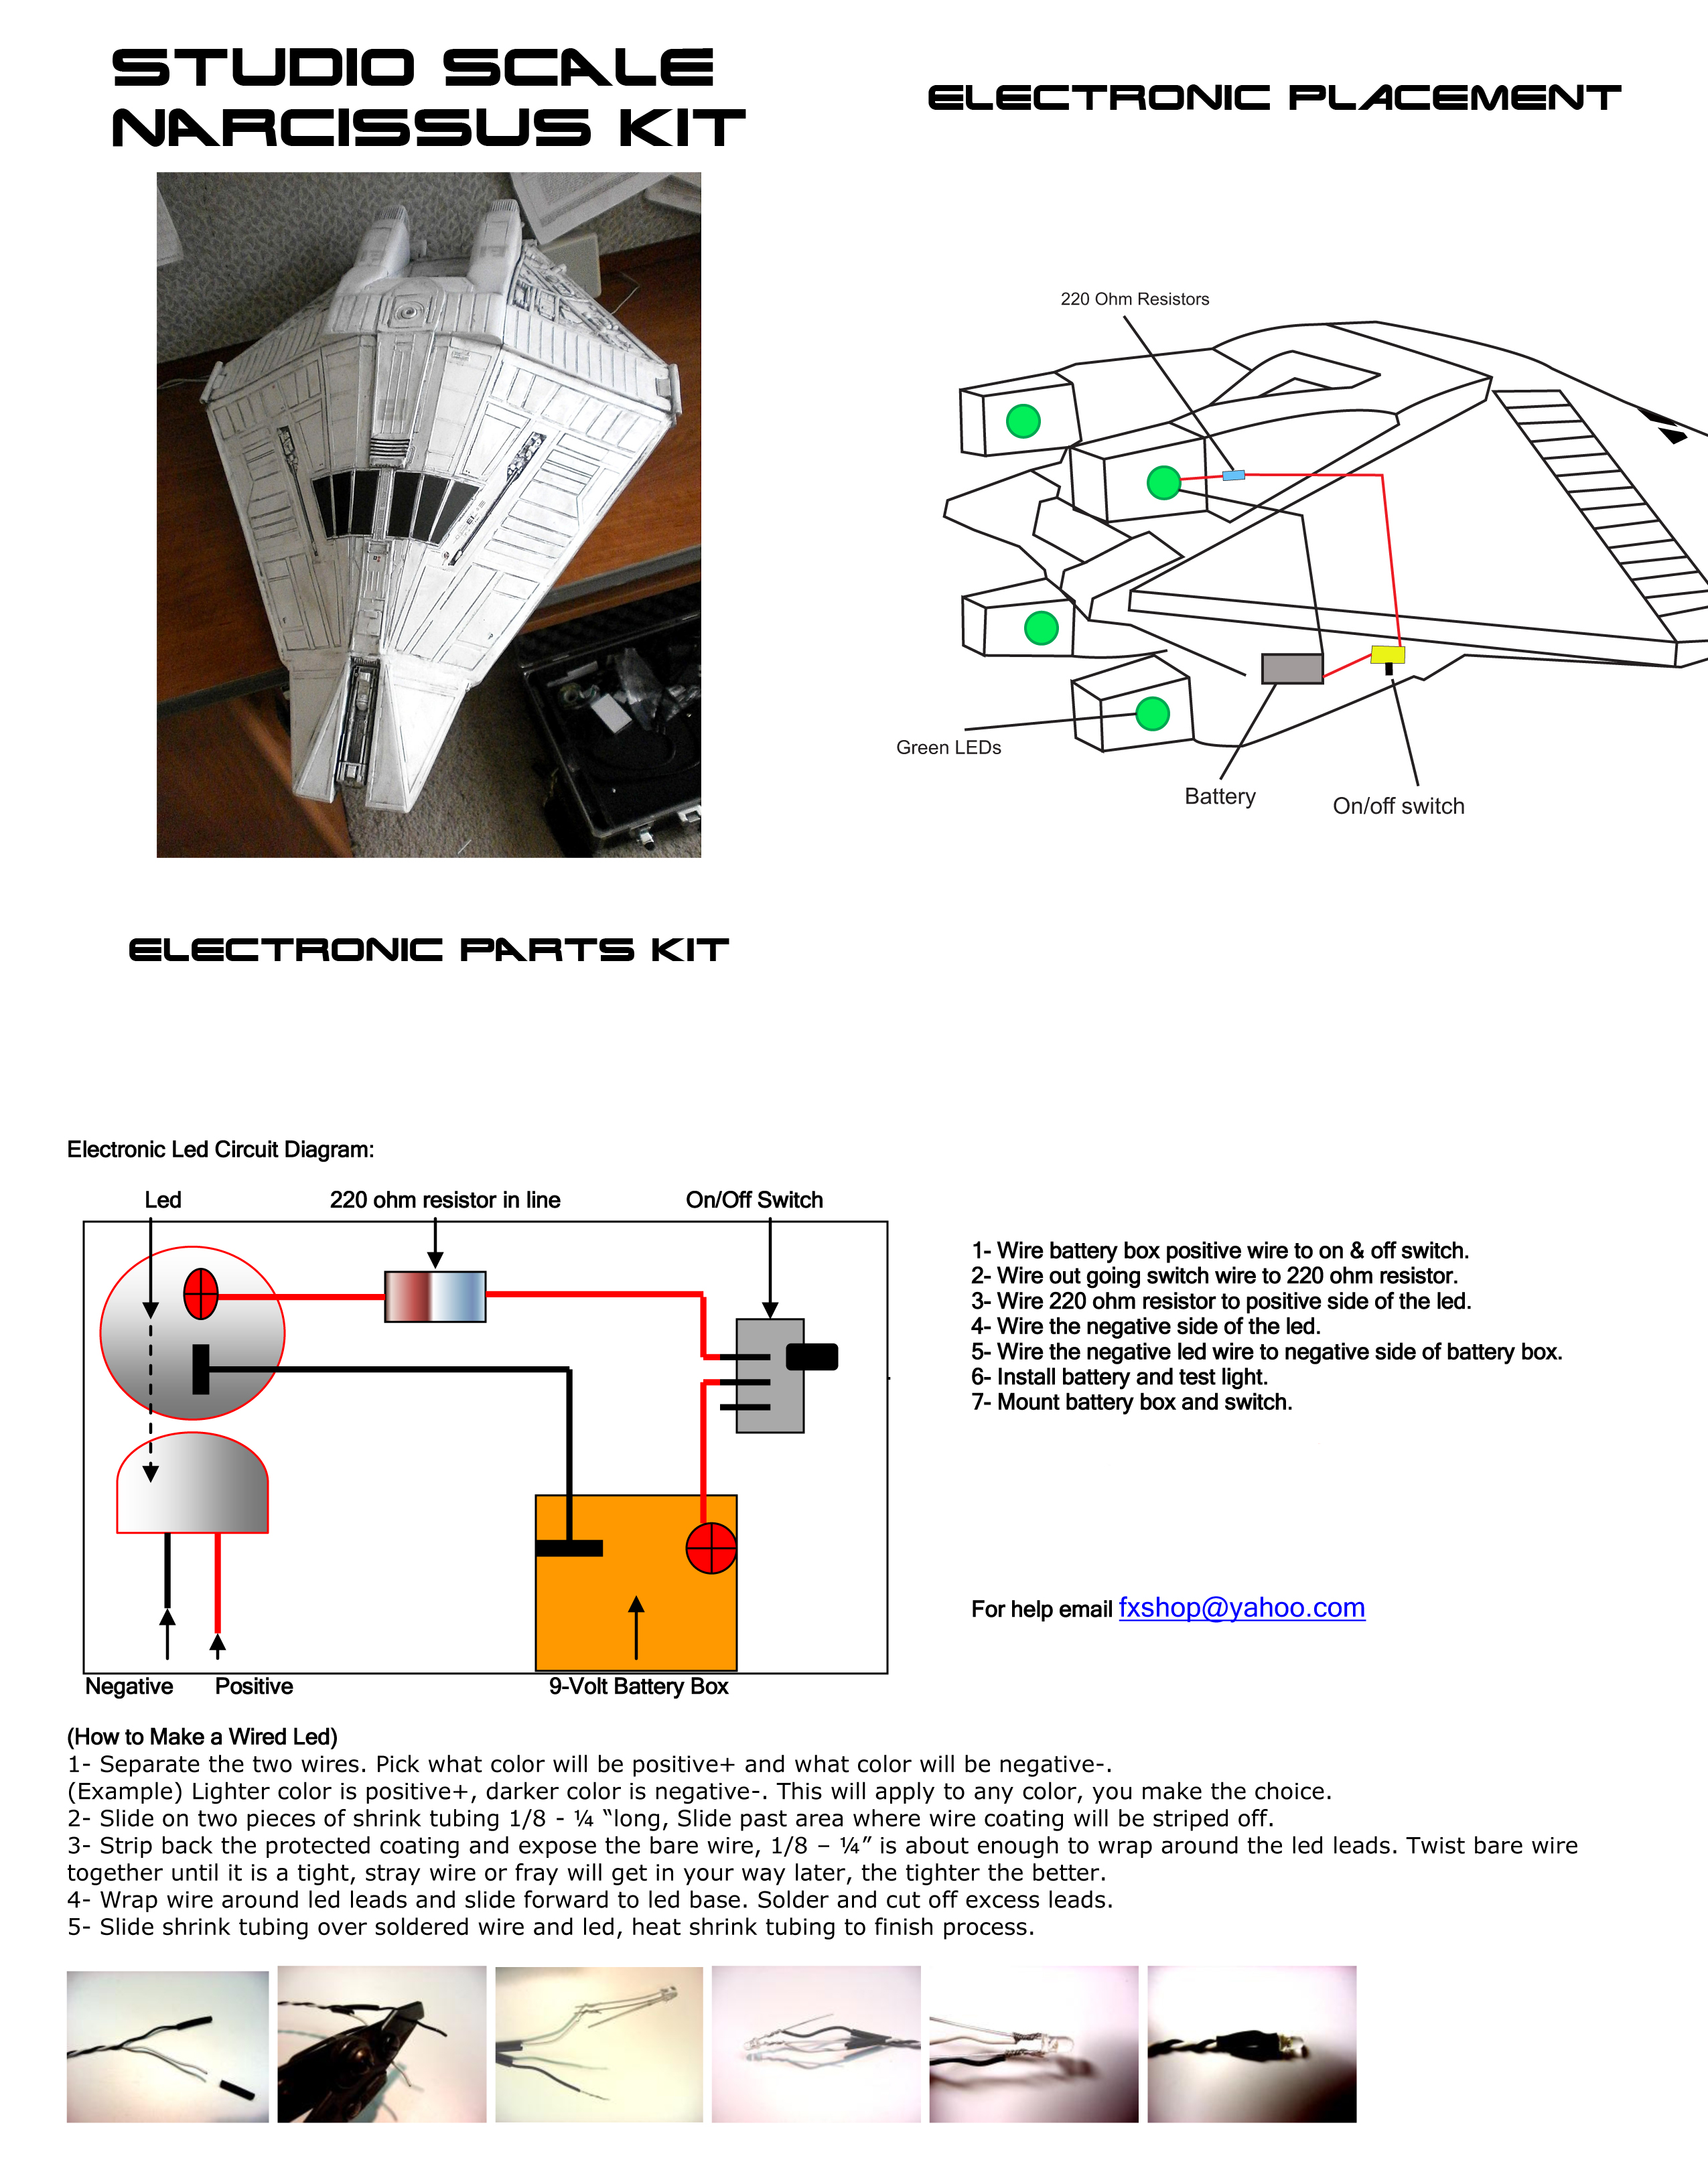 Charming 4 Wire To 3 Wire 220 Contemporary - Wiring Diagram Ideas ...